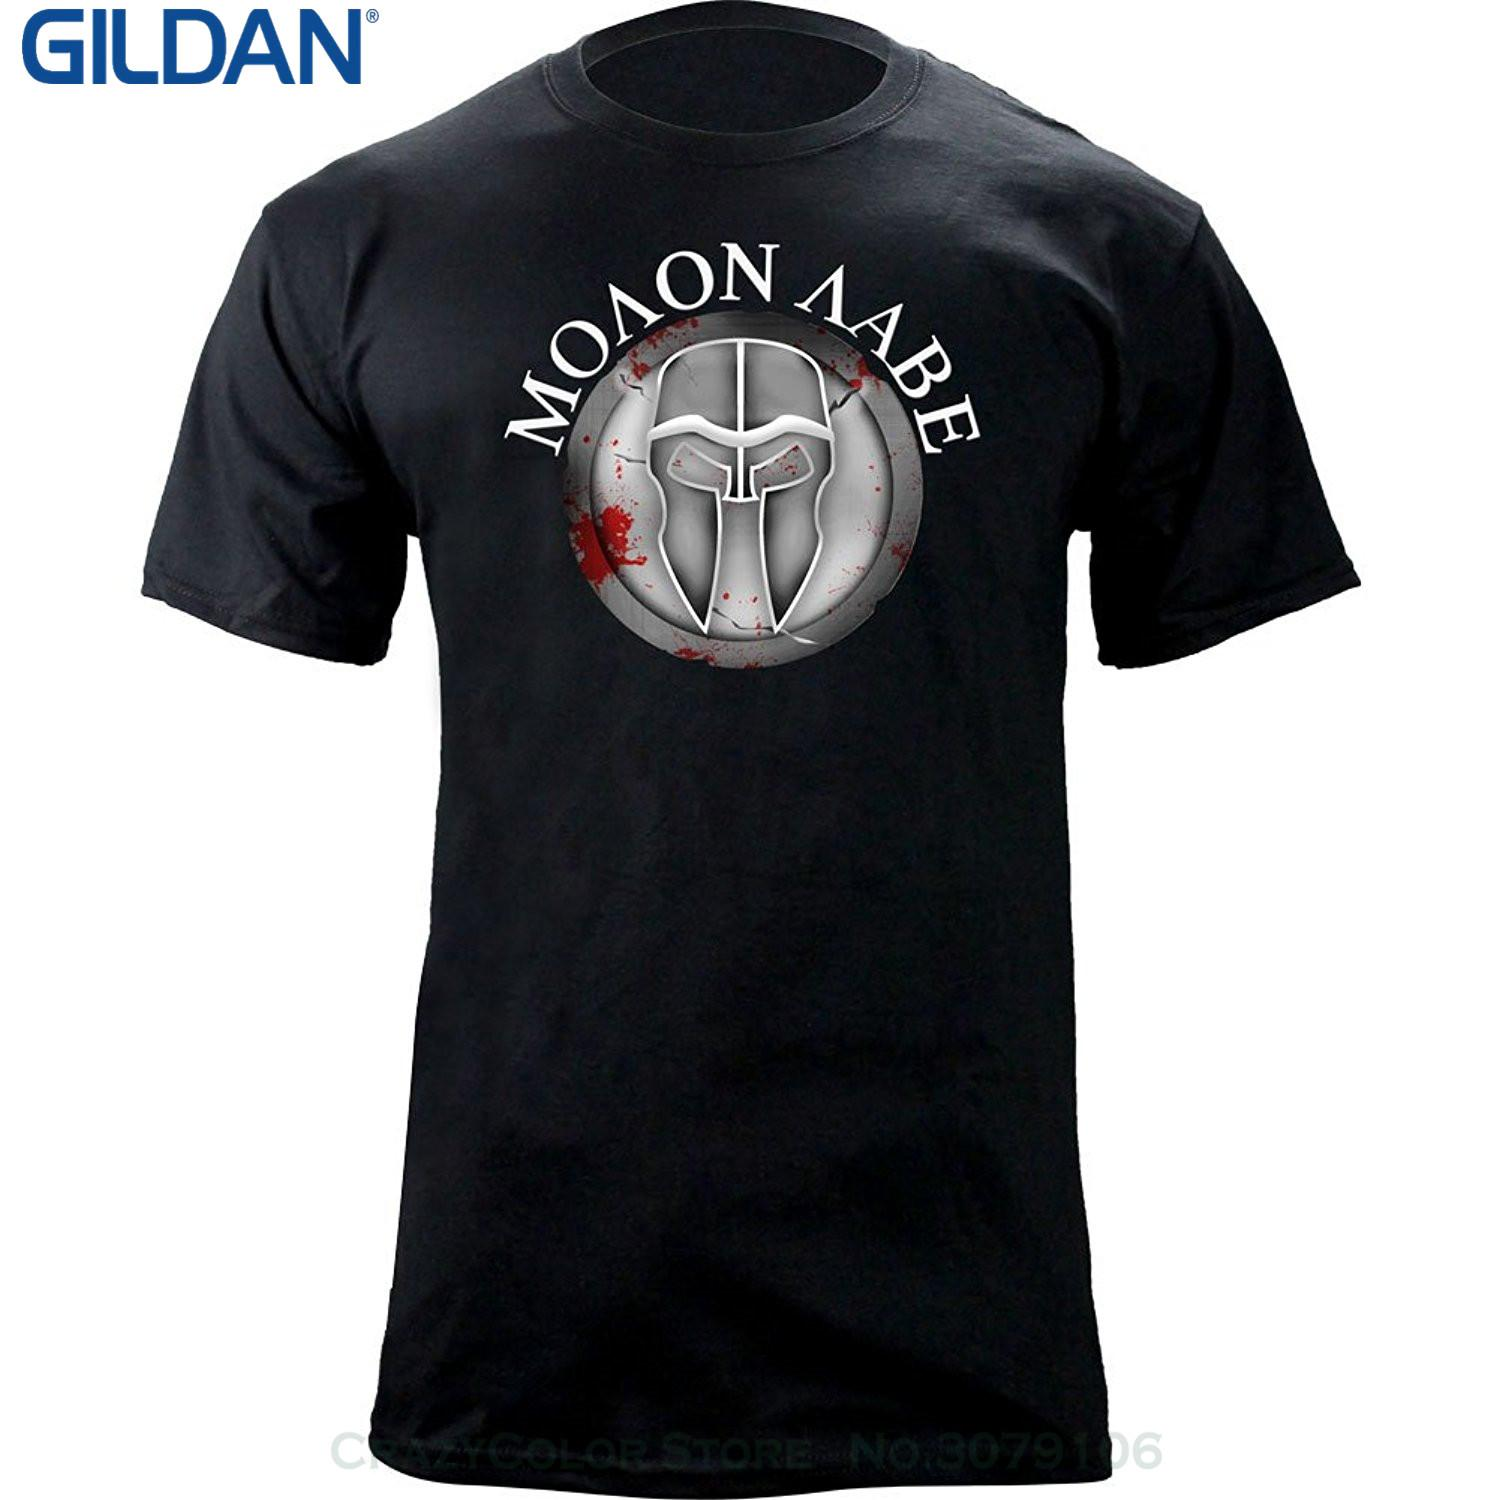 Wholesale discount 2019 Summer New Brand T Shirt Men Hip Hop Men T shirt Casual Fitness Molon Labe Ancient Shield T shirt